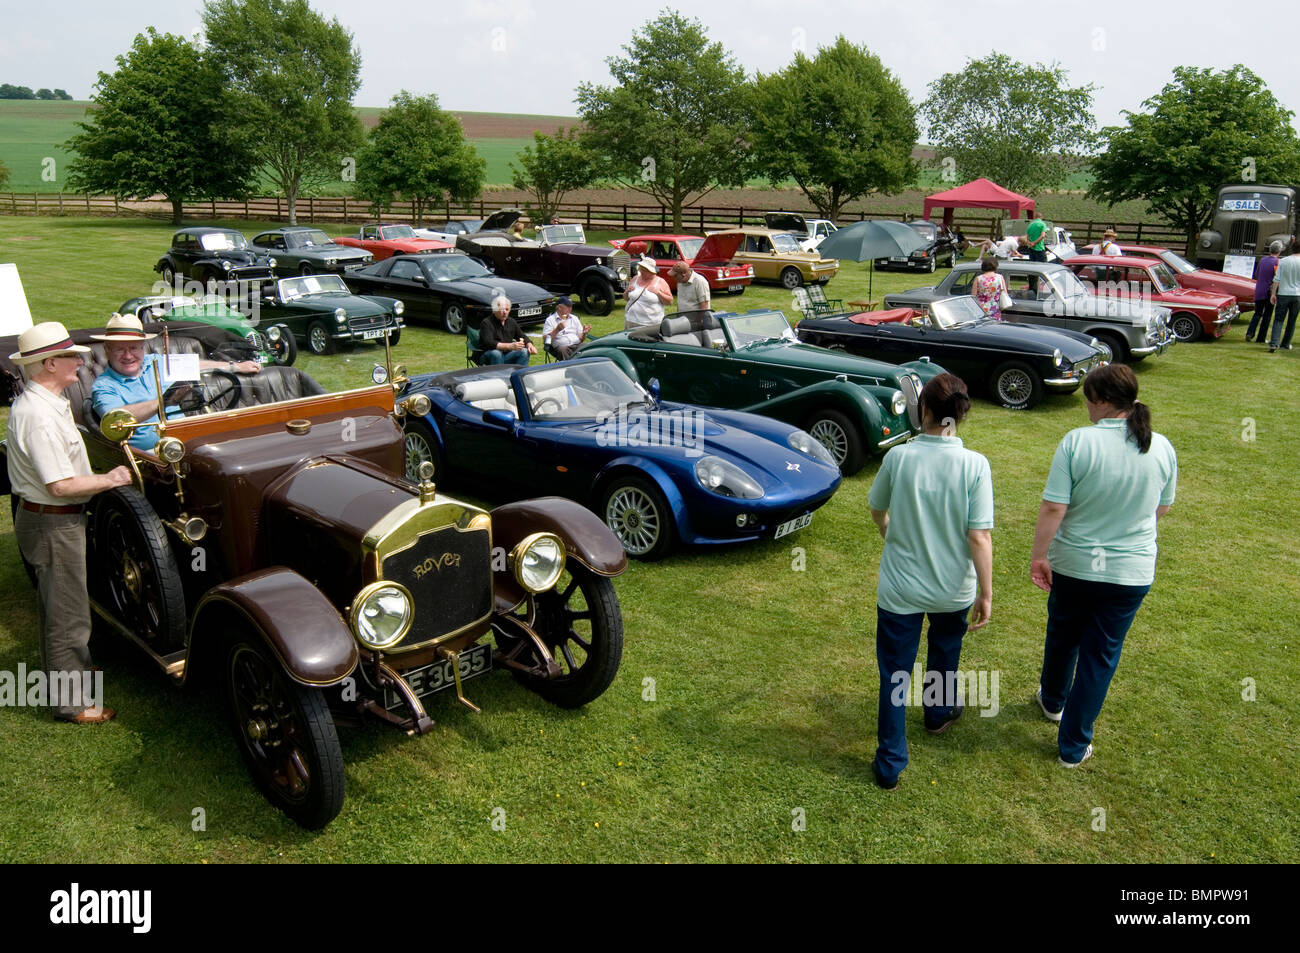 Classic Car Shows Stock Photos & Classic Car Shows Stock Images - Alamy